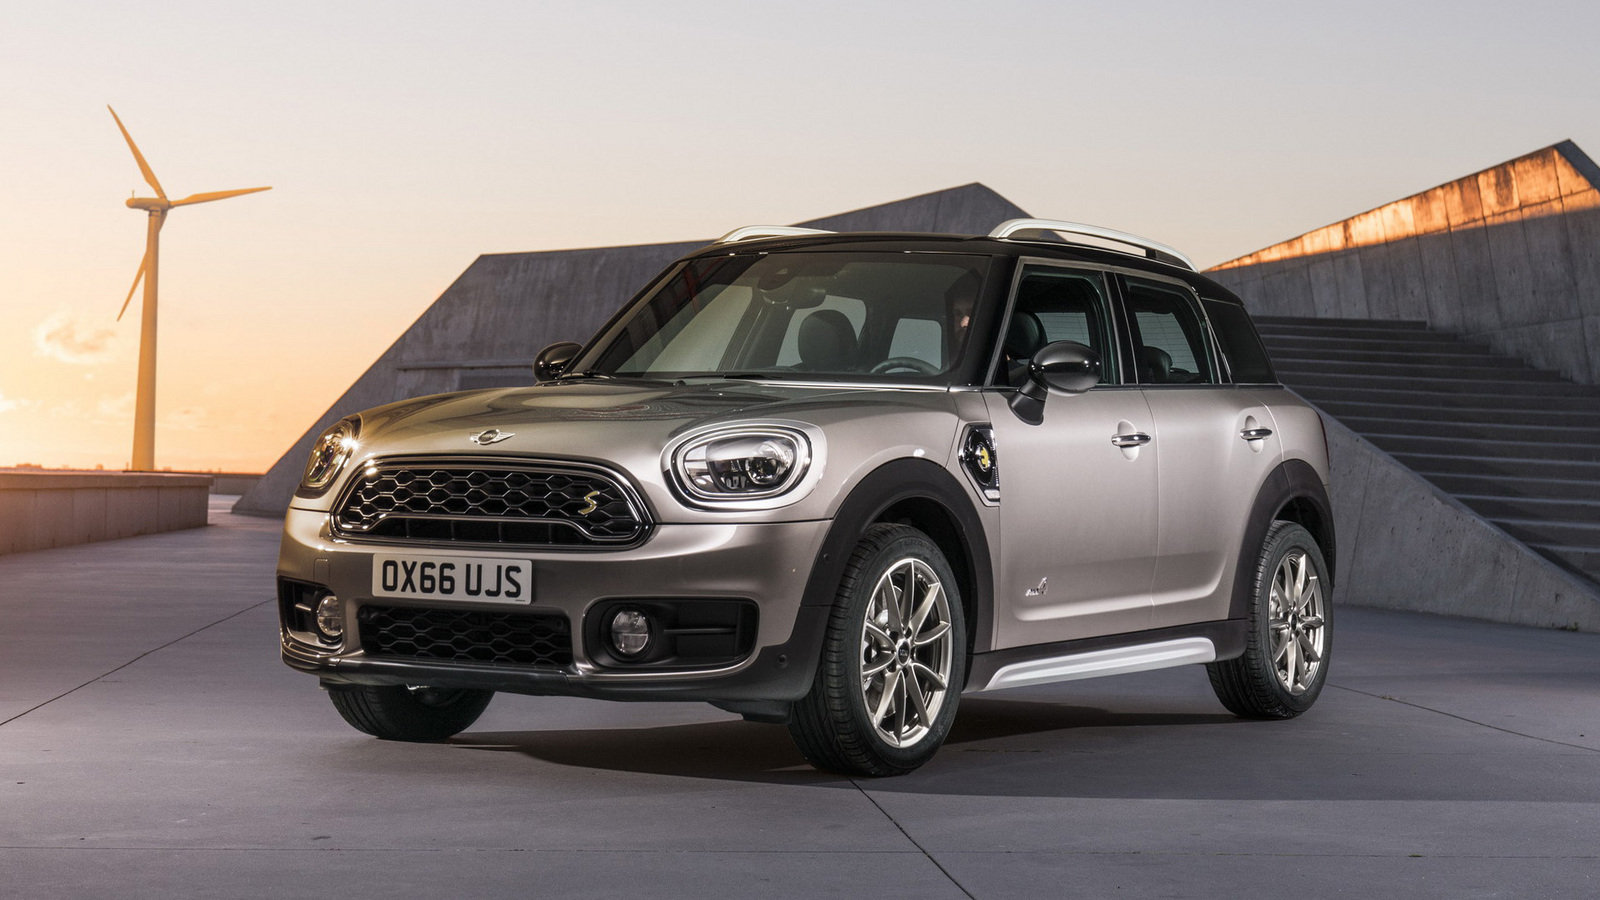 2017 mini cooper s e countryman all4 review top speed. Black Bedroom Furniture Sets. Home Design Ideas